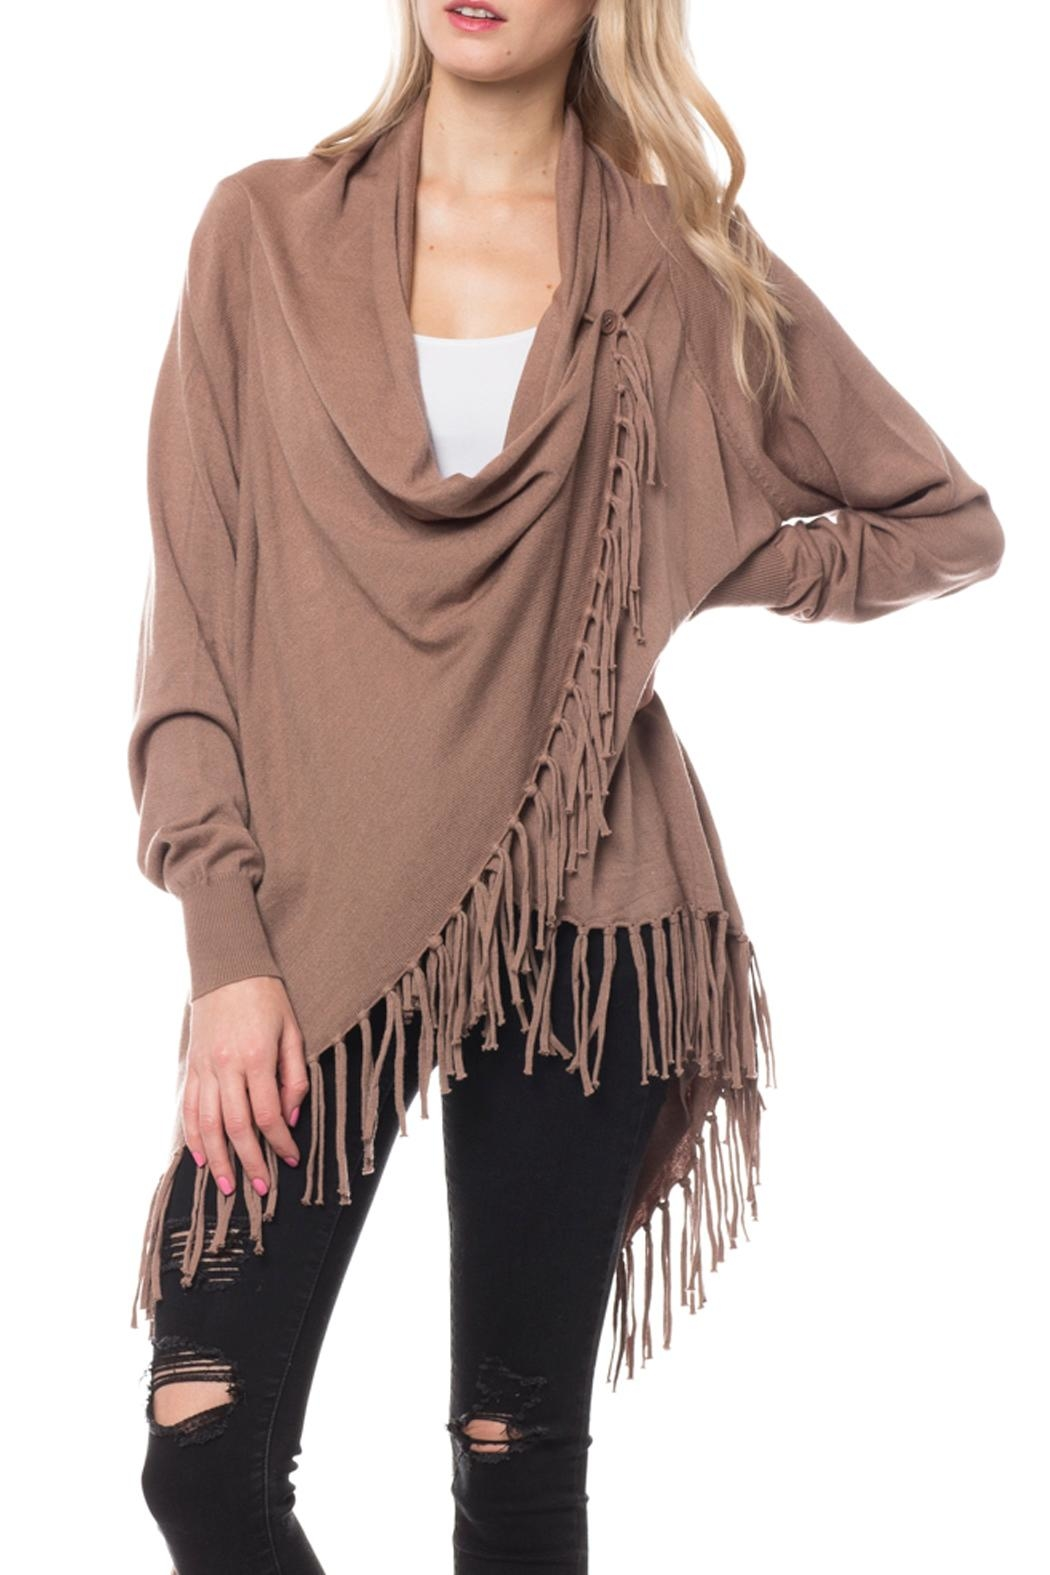 Wild Lilies Jewelry  Fringe Cardigan Sweater - Main Image